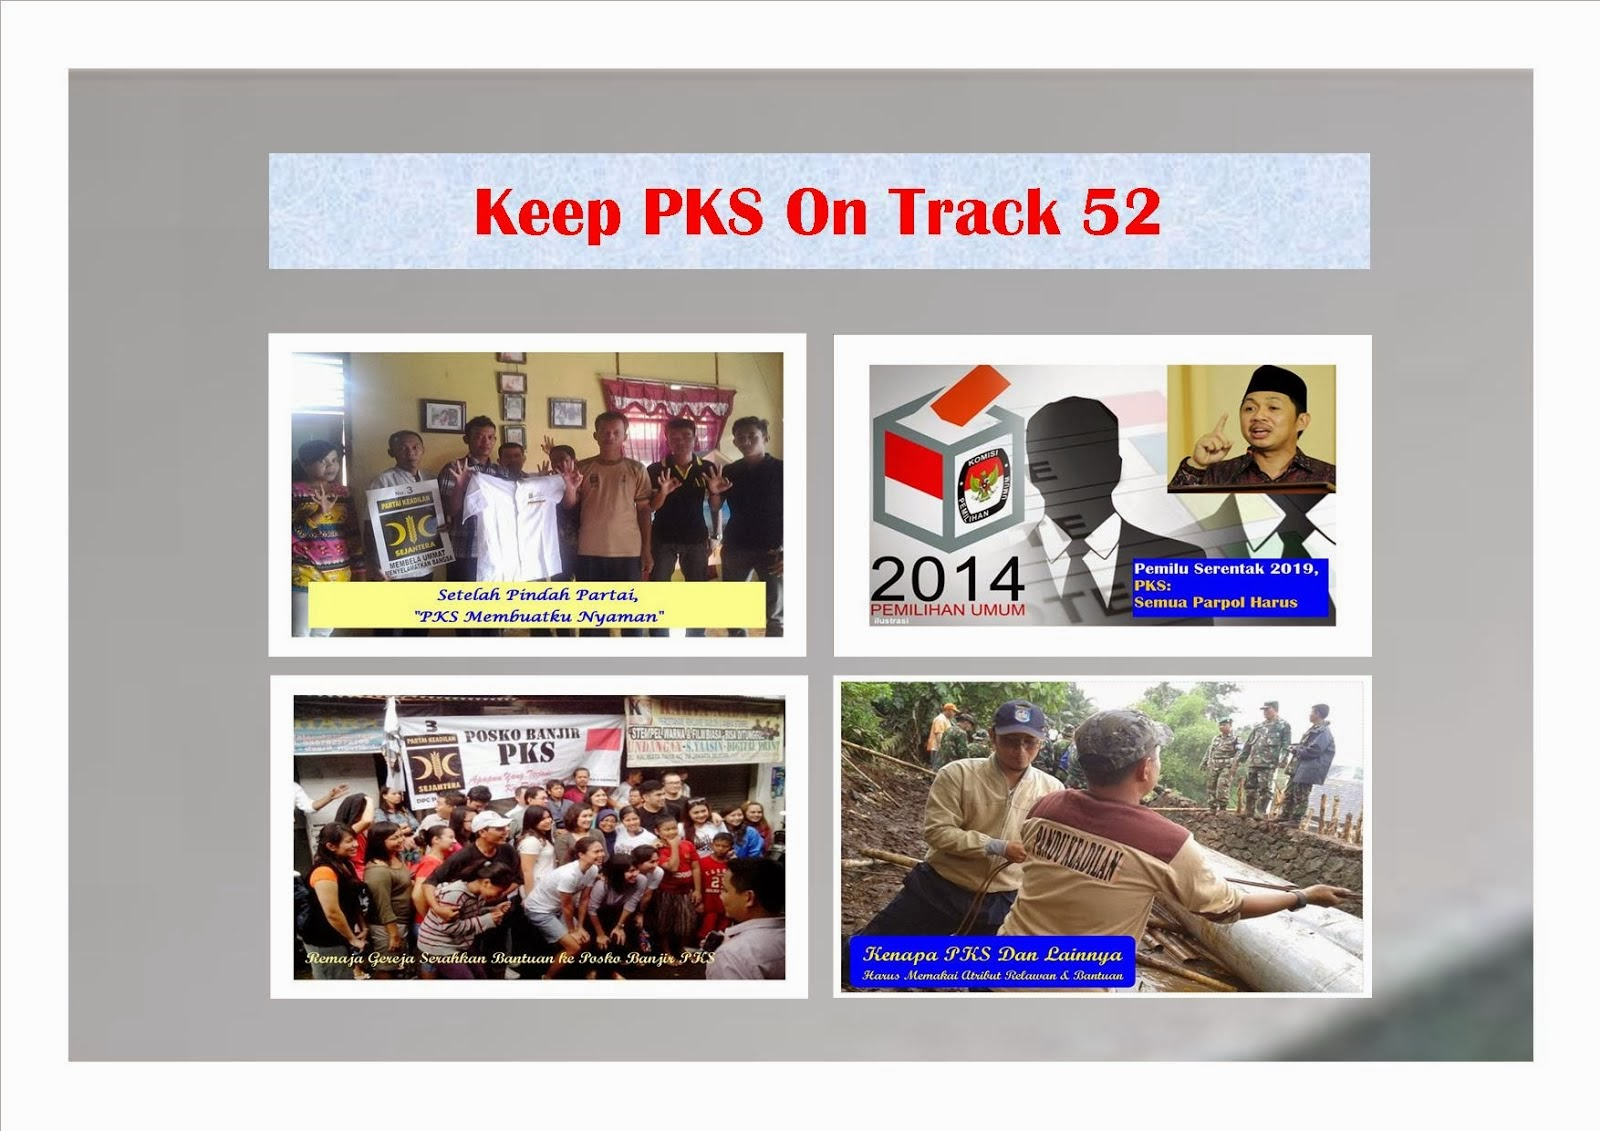 Keep PKS on Track 52